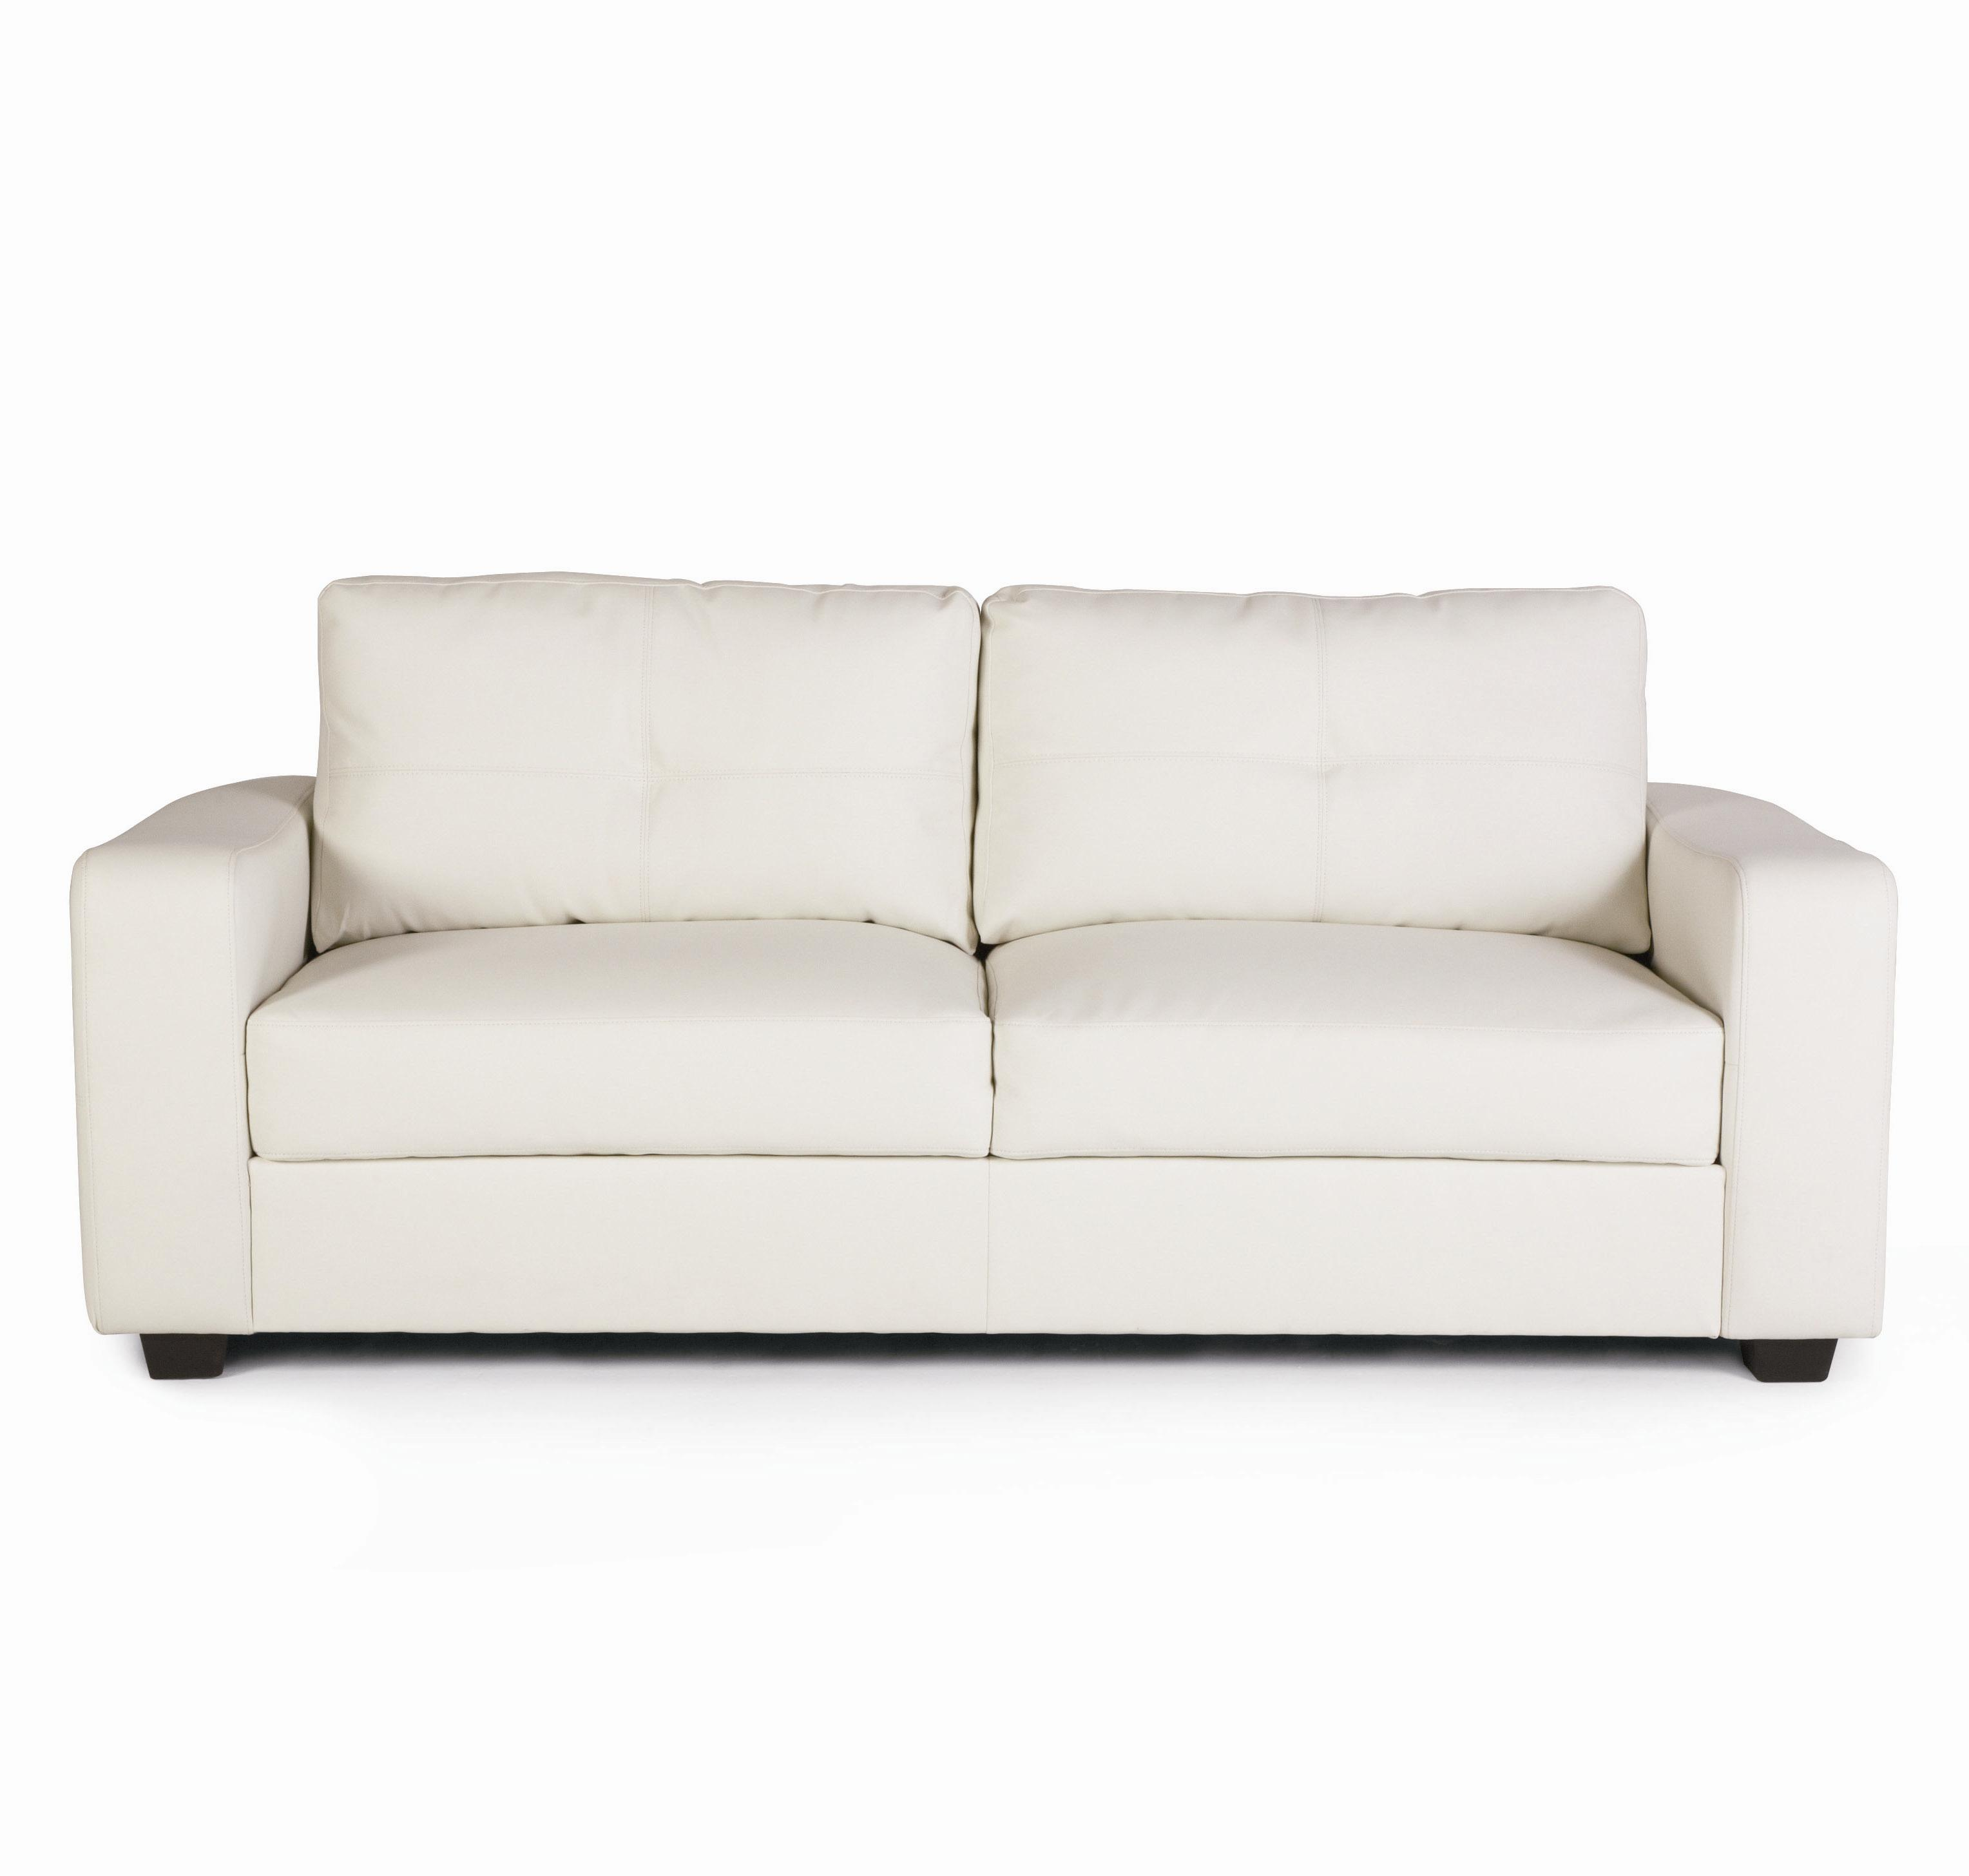 easy to clean white leather sofa olive green velvet chesterfield petition edward luvs